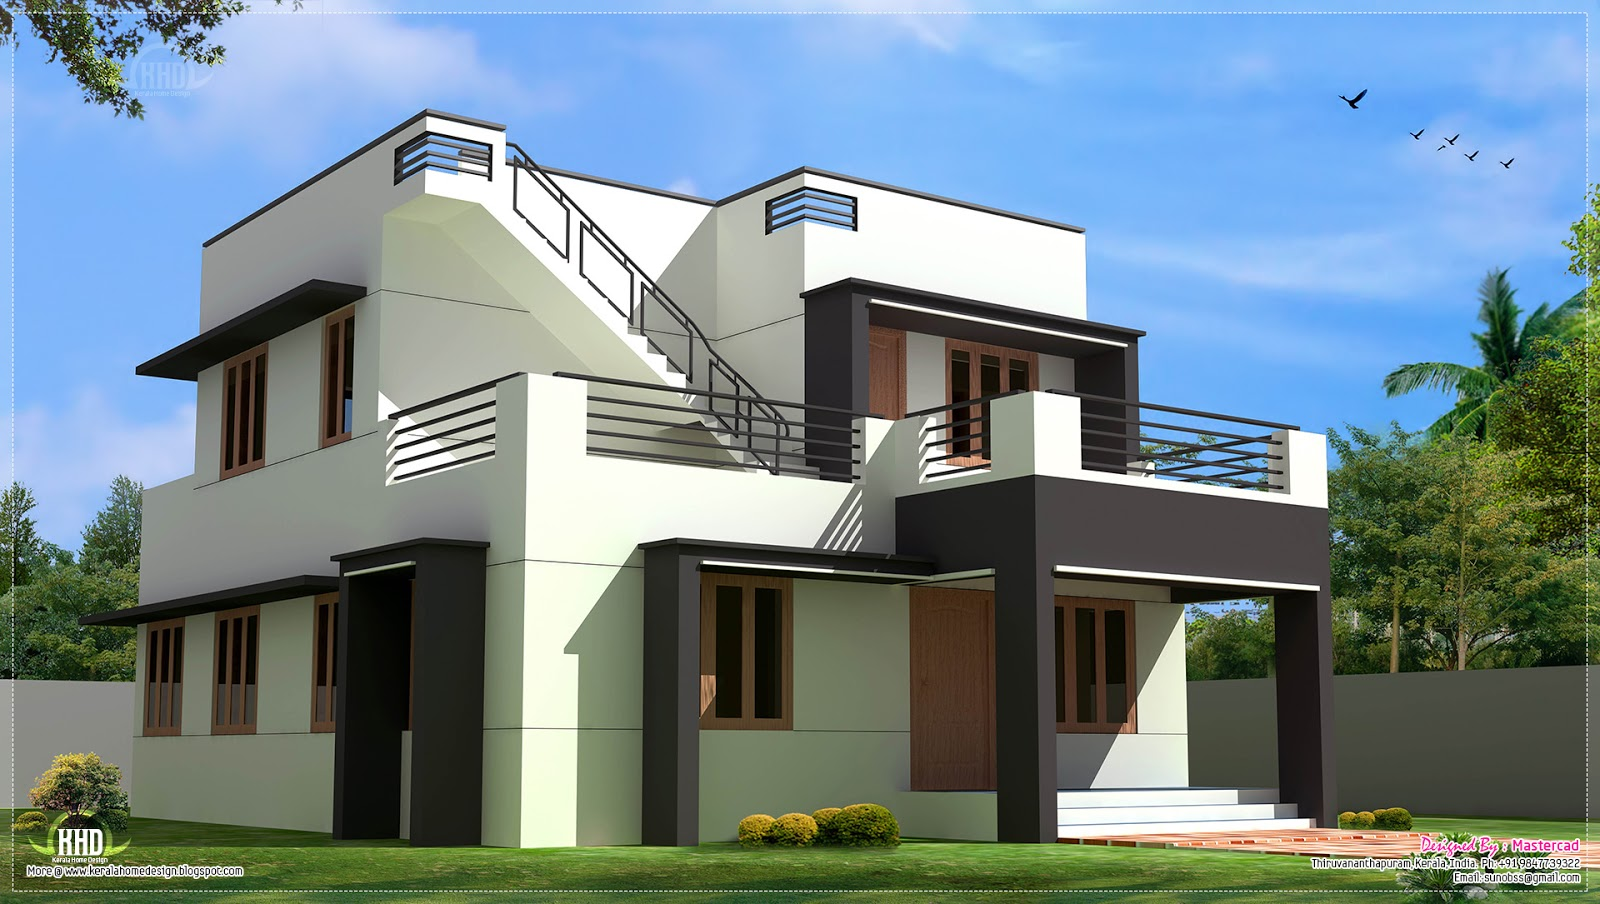 Modern House Design In 1700 Kerala Home Design